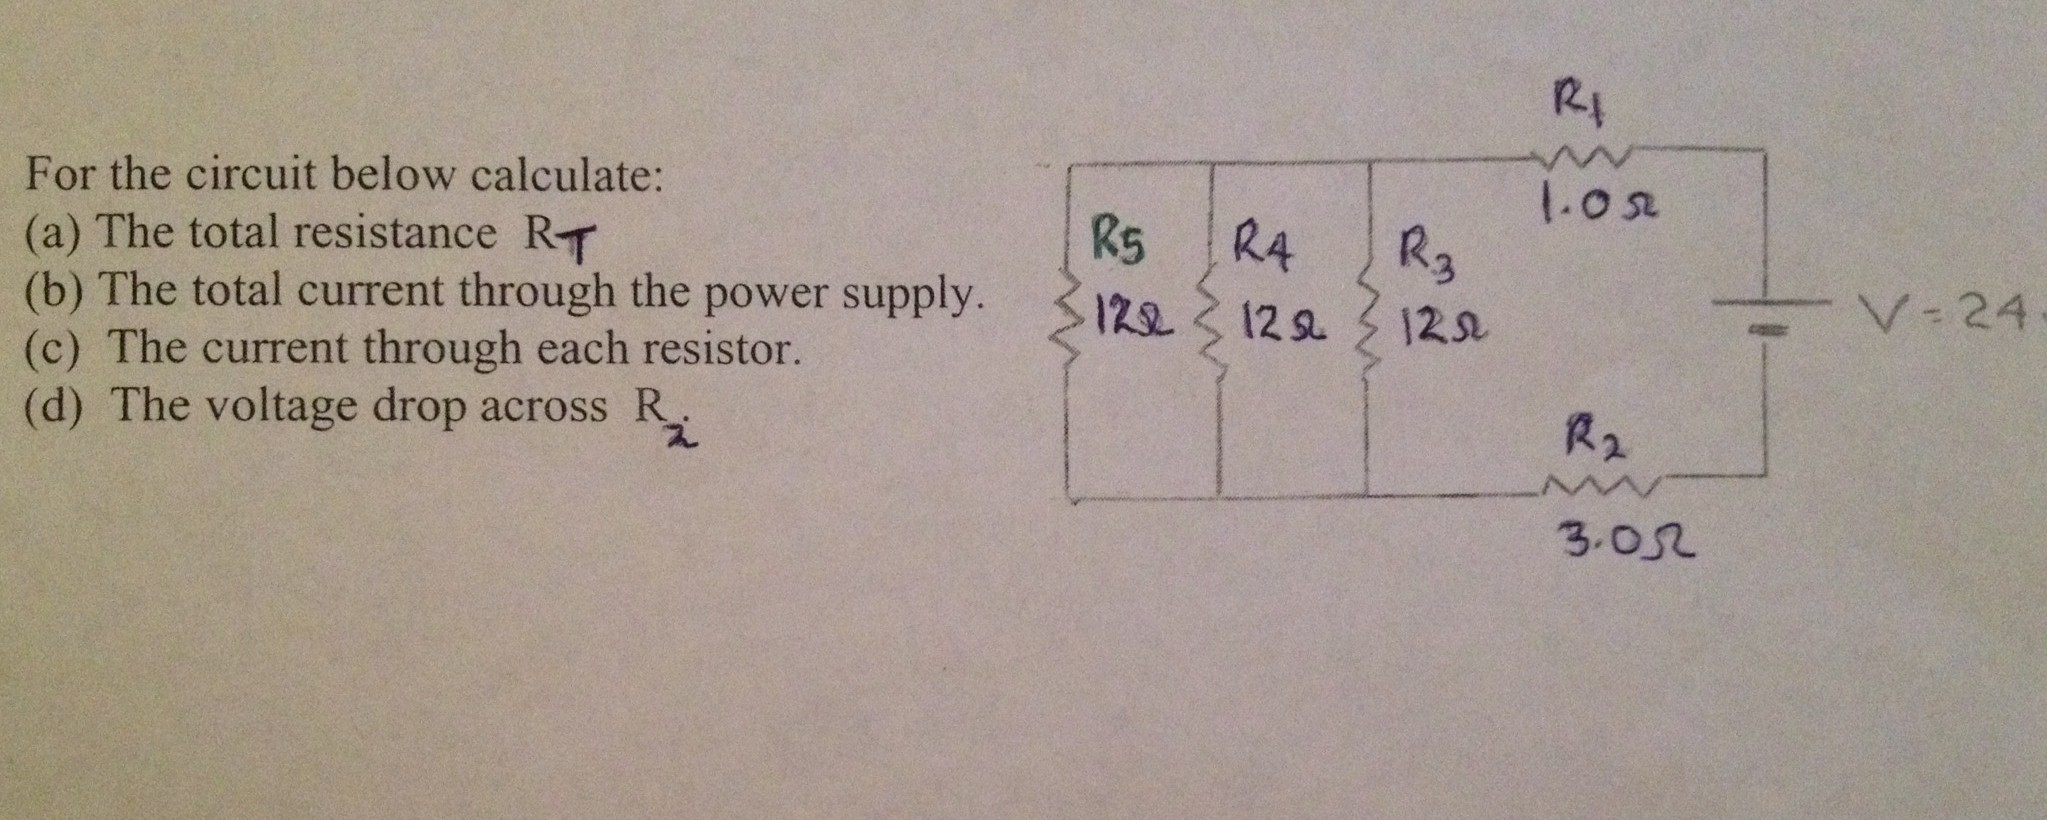 Solved For The Circuit Below Calculate Total Resista Find Equivalent Resistance Rt Of Given Cheggcom Resist